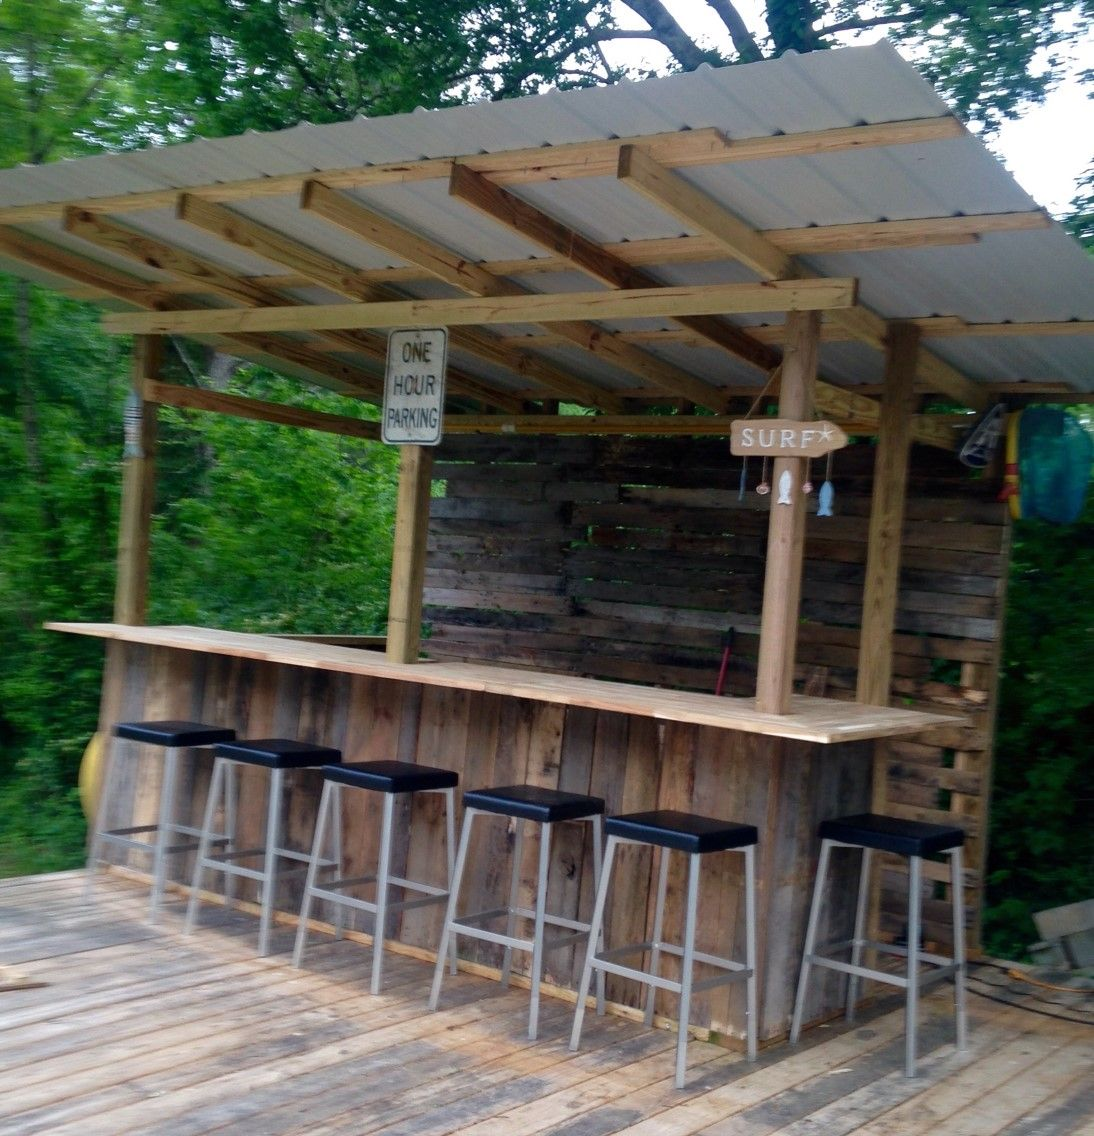 Our little tiki bar from pallet wood and salvaged metal roofing and